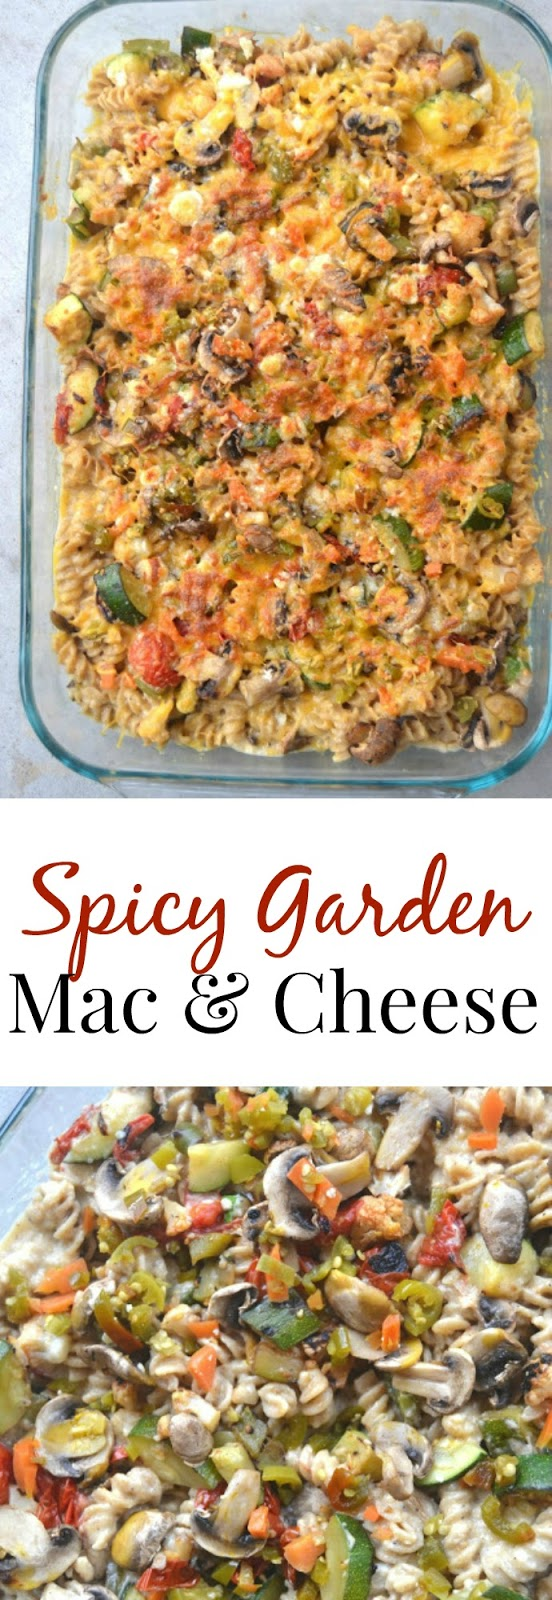 This Spicy Garden Mac and Cheese is loaded with vegetables and made lighter with a creamy cauliflower sauce. www.nutritionistreviews.com